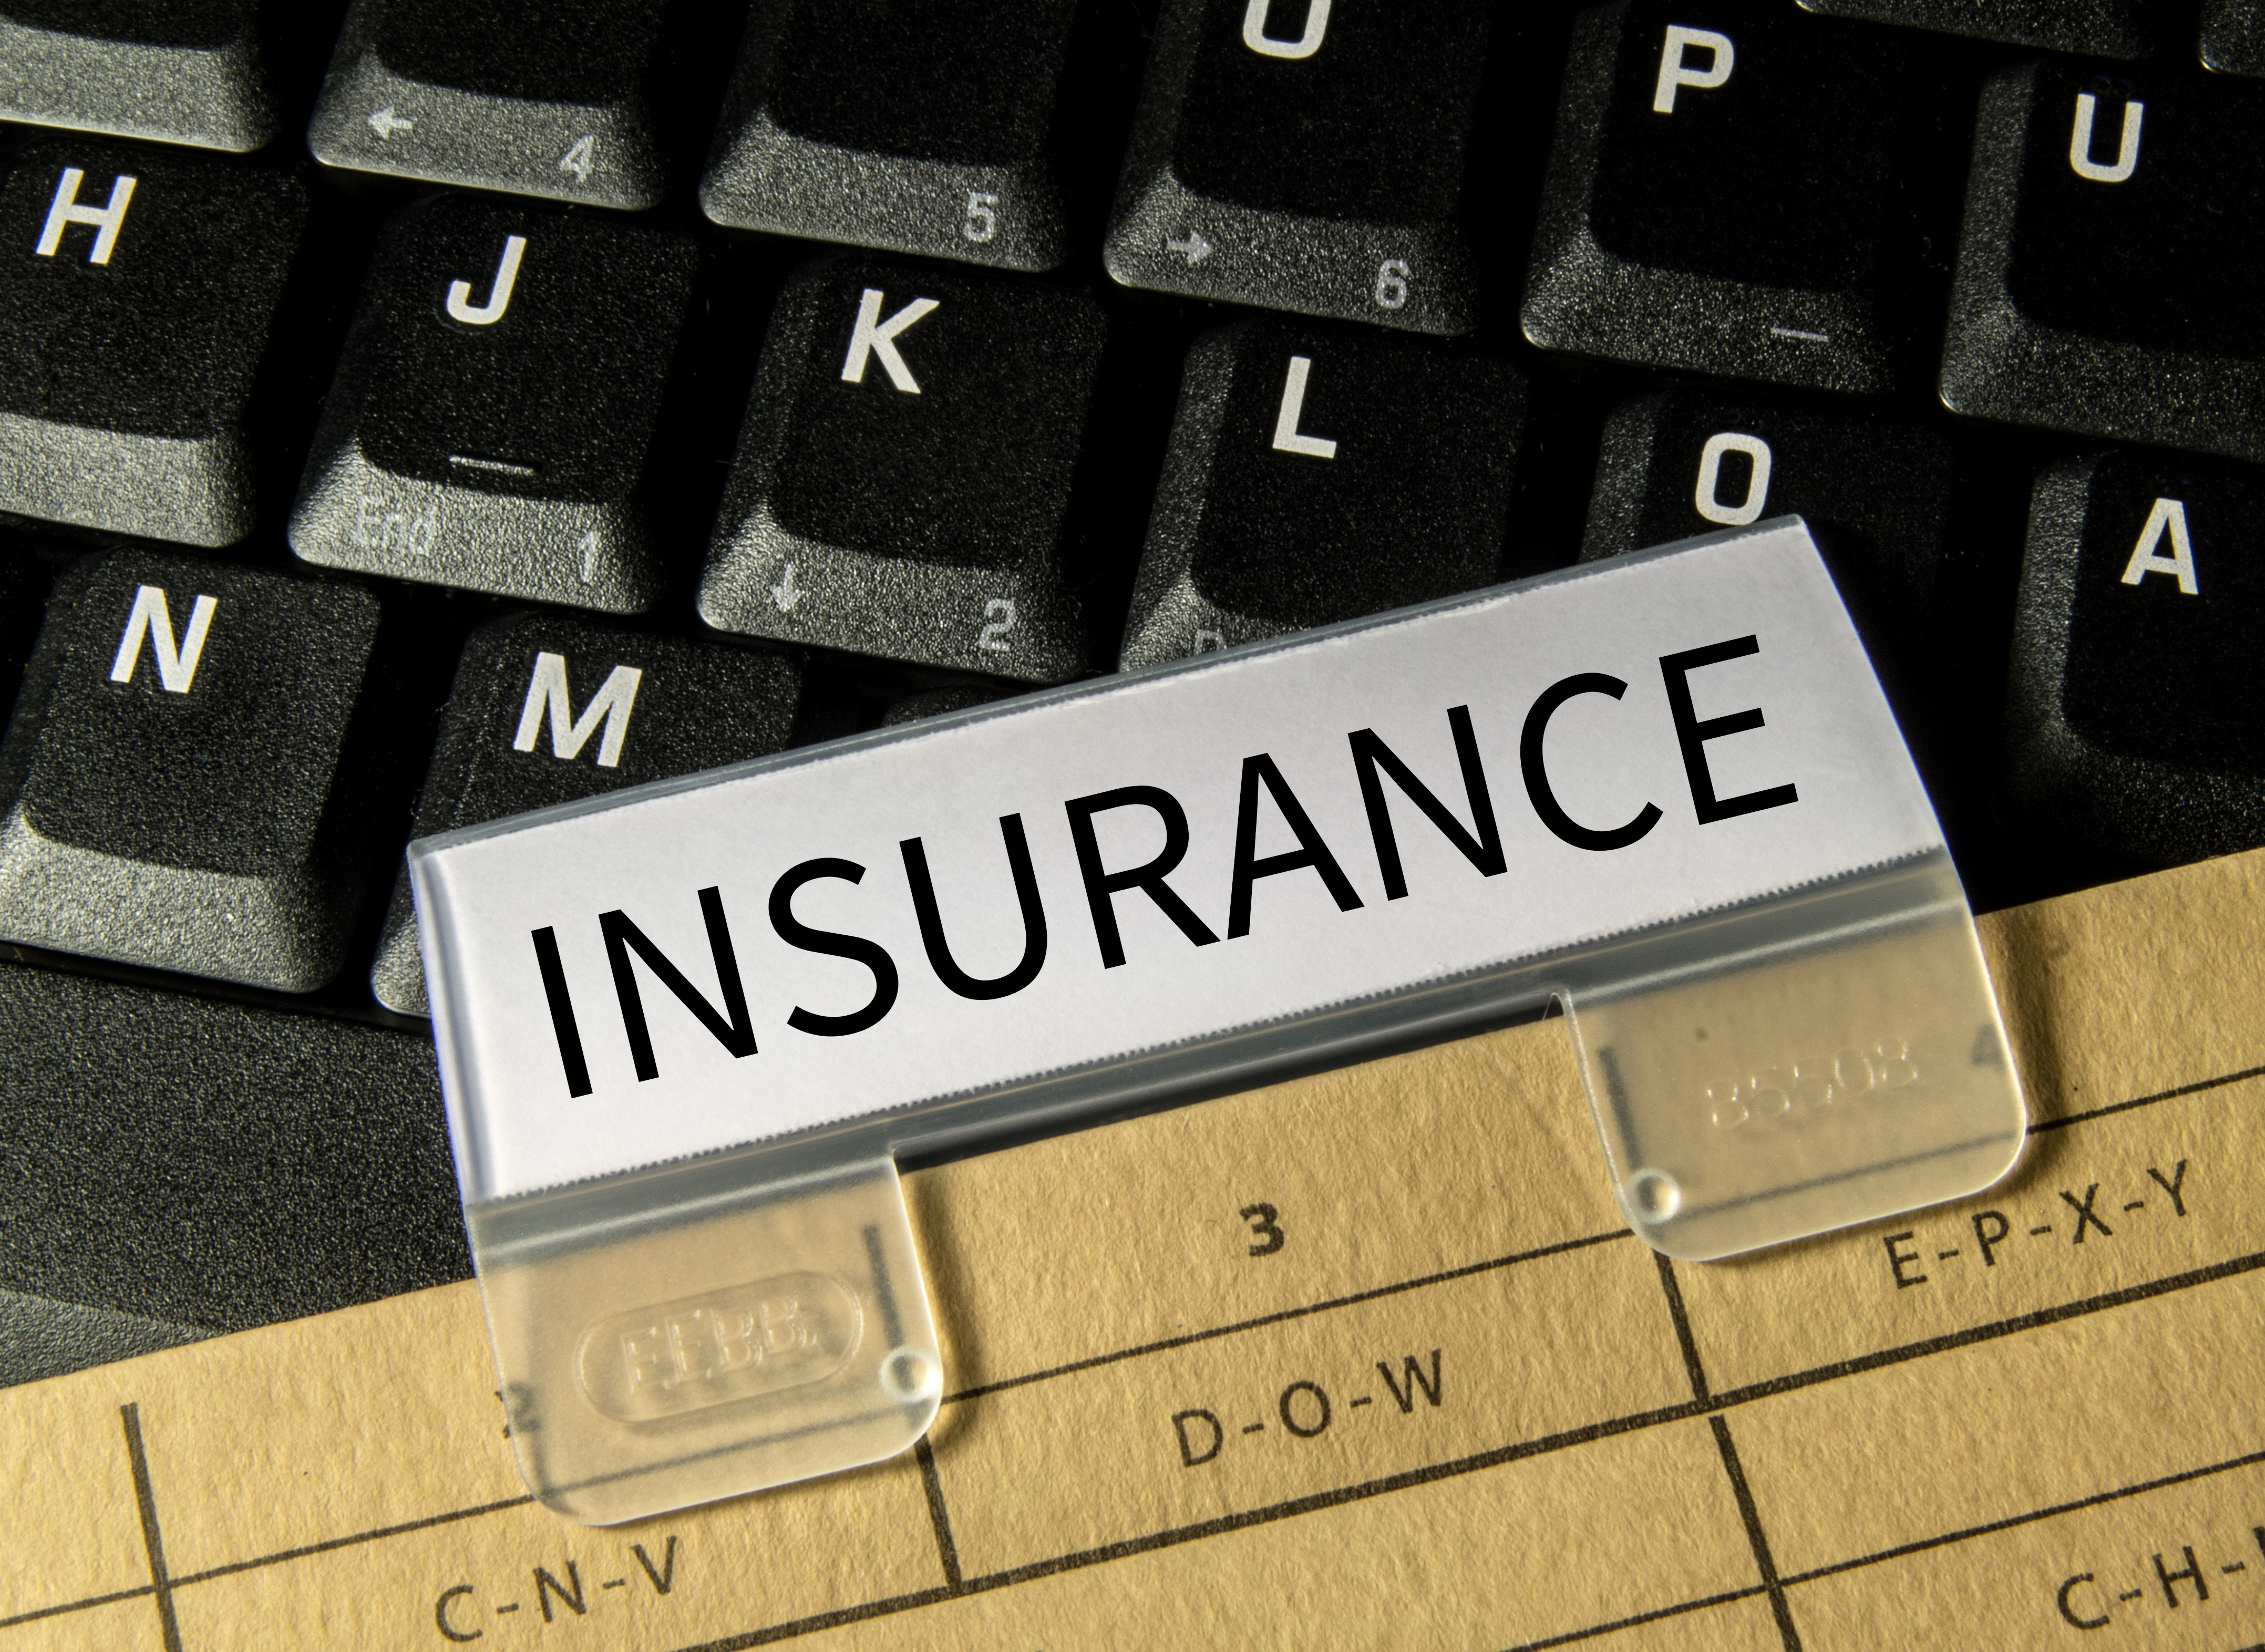 The UK is the third third largest insurance industry in the world